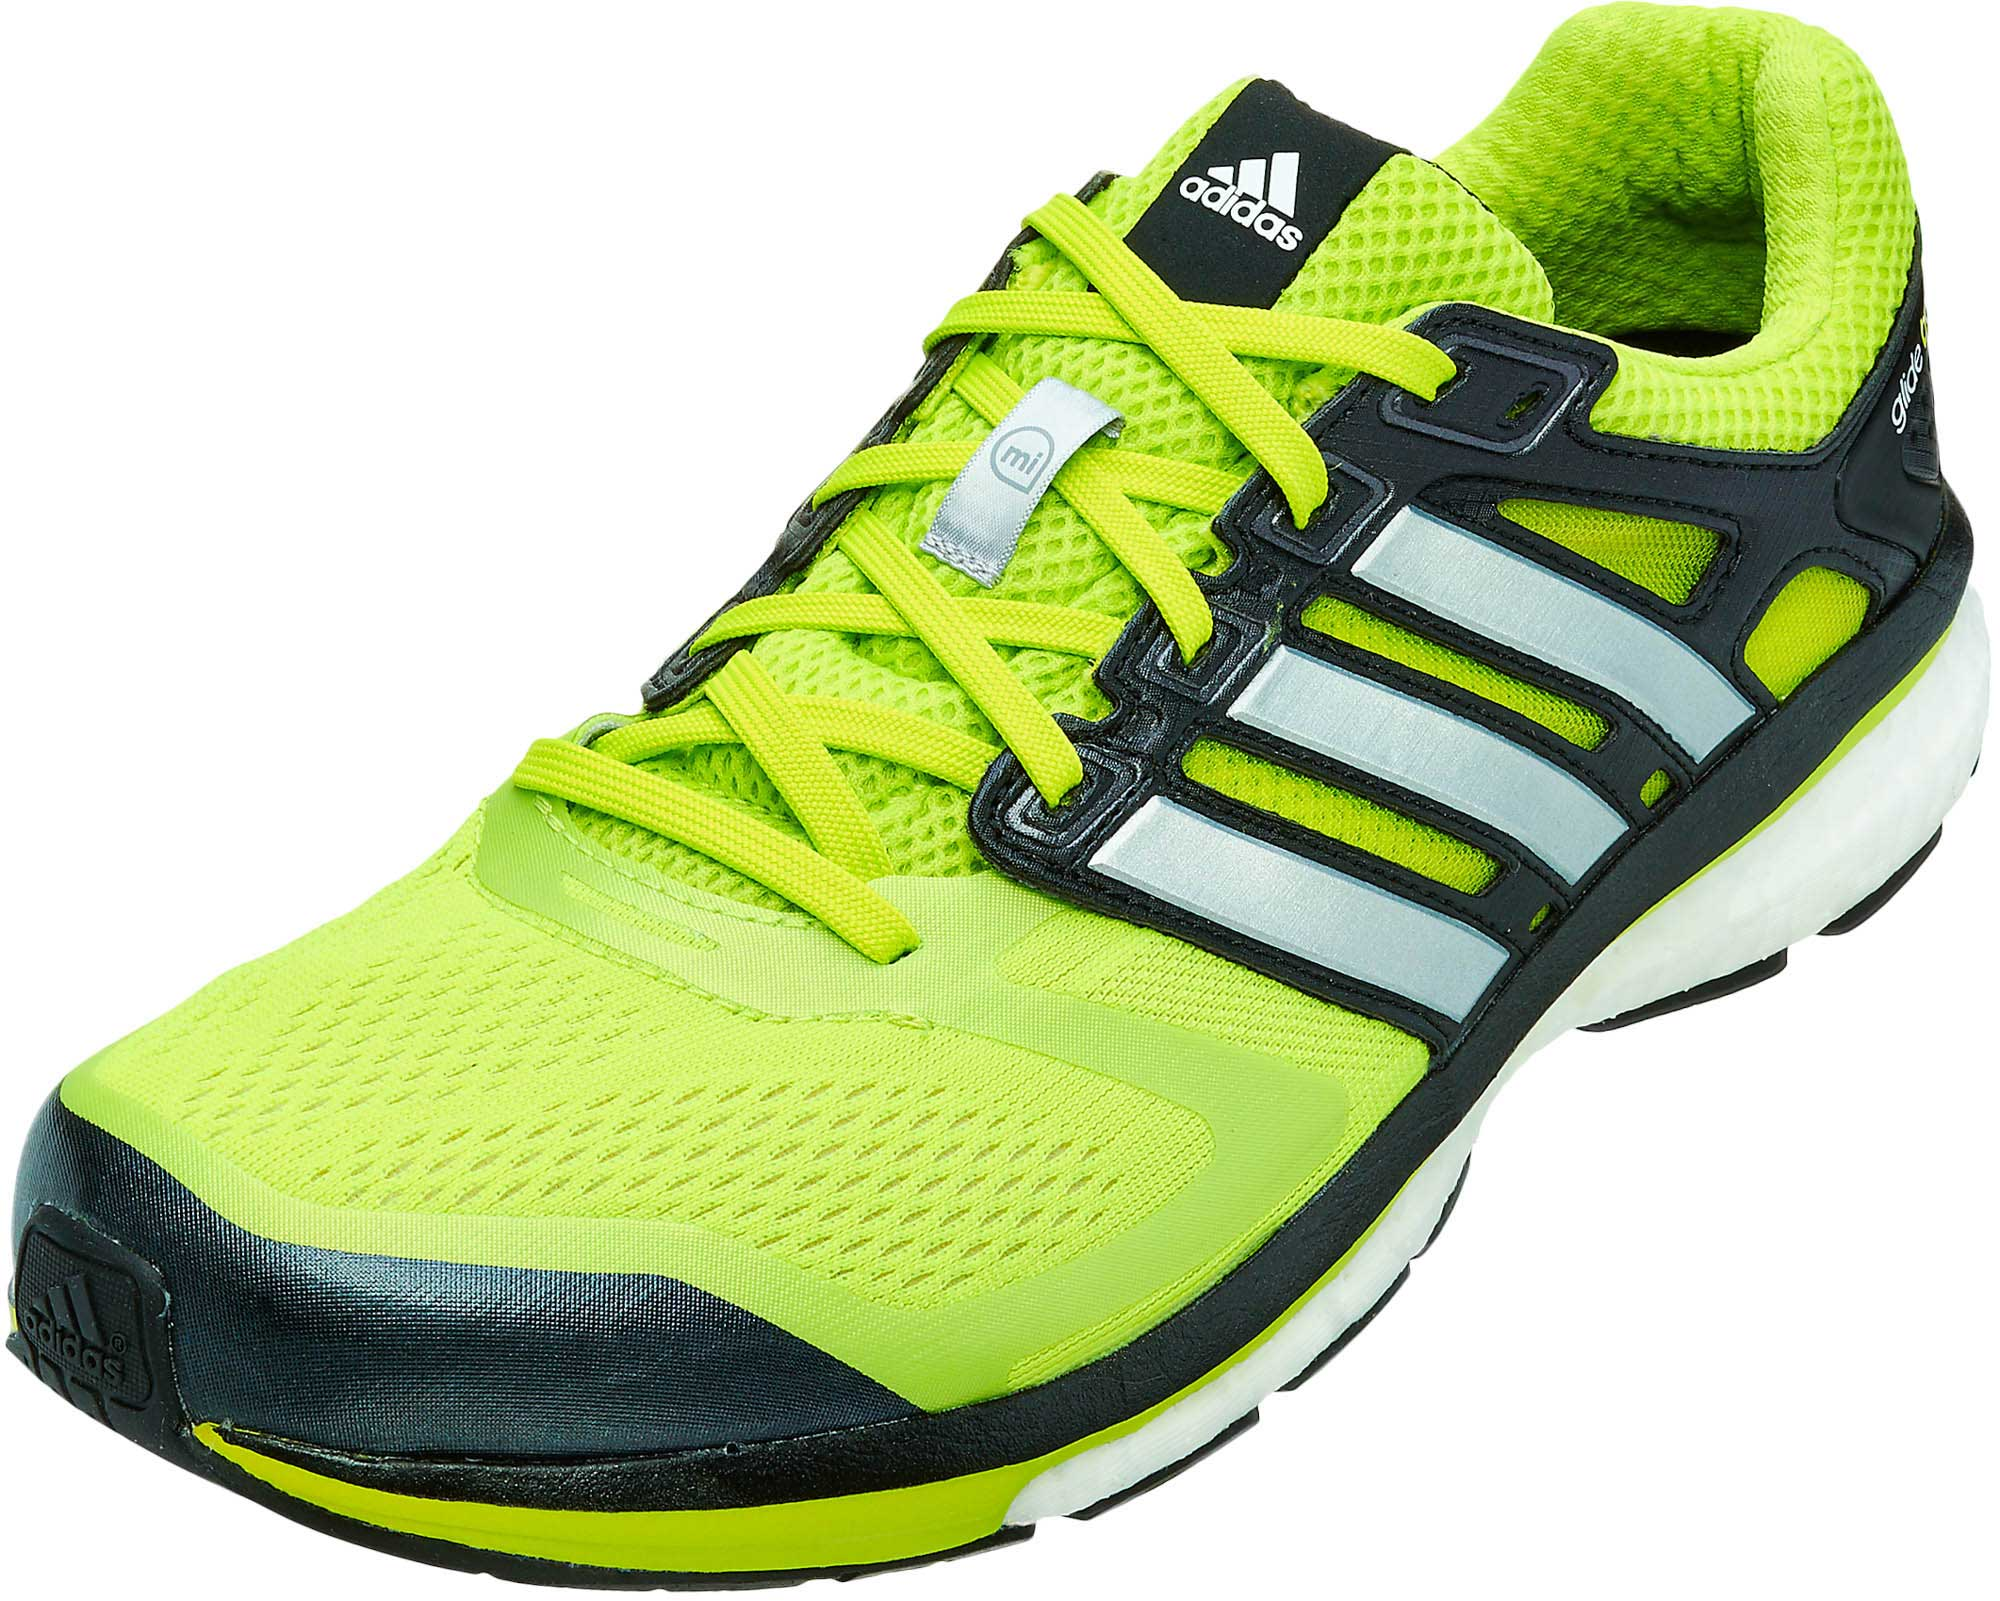 adidas Supernova Boost Running Shoes - Green Boost Shoes